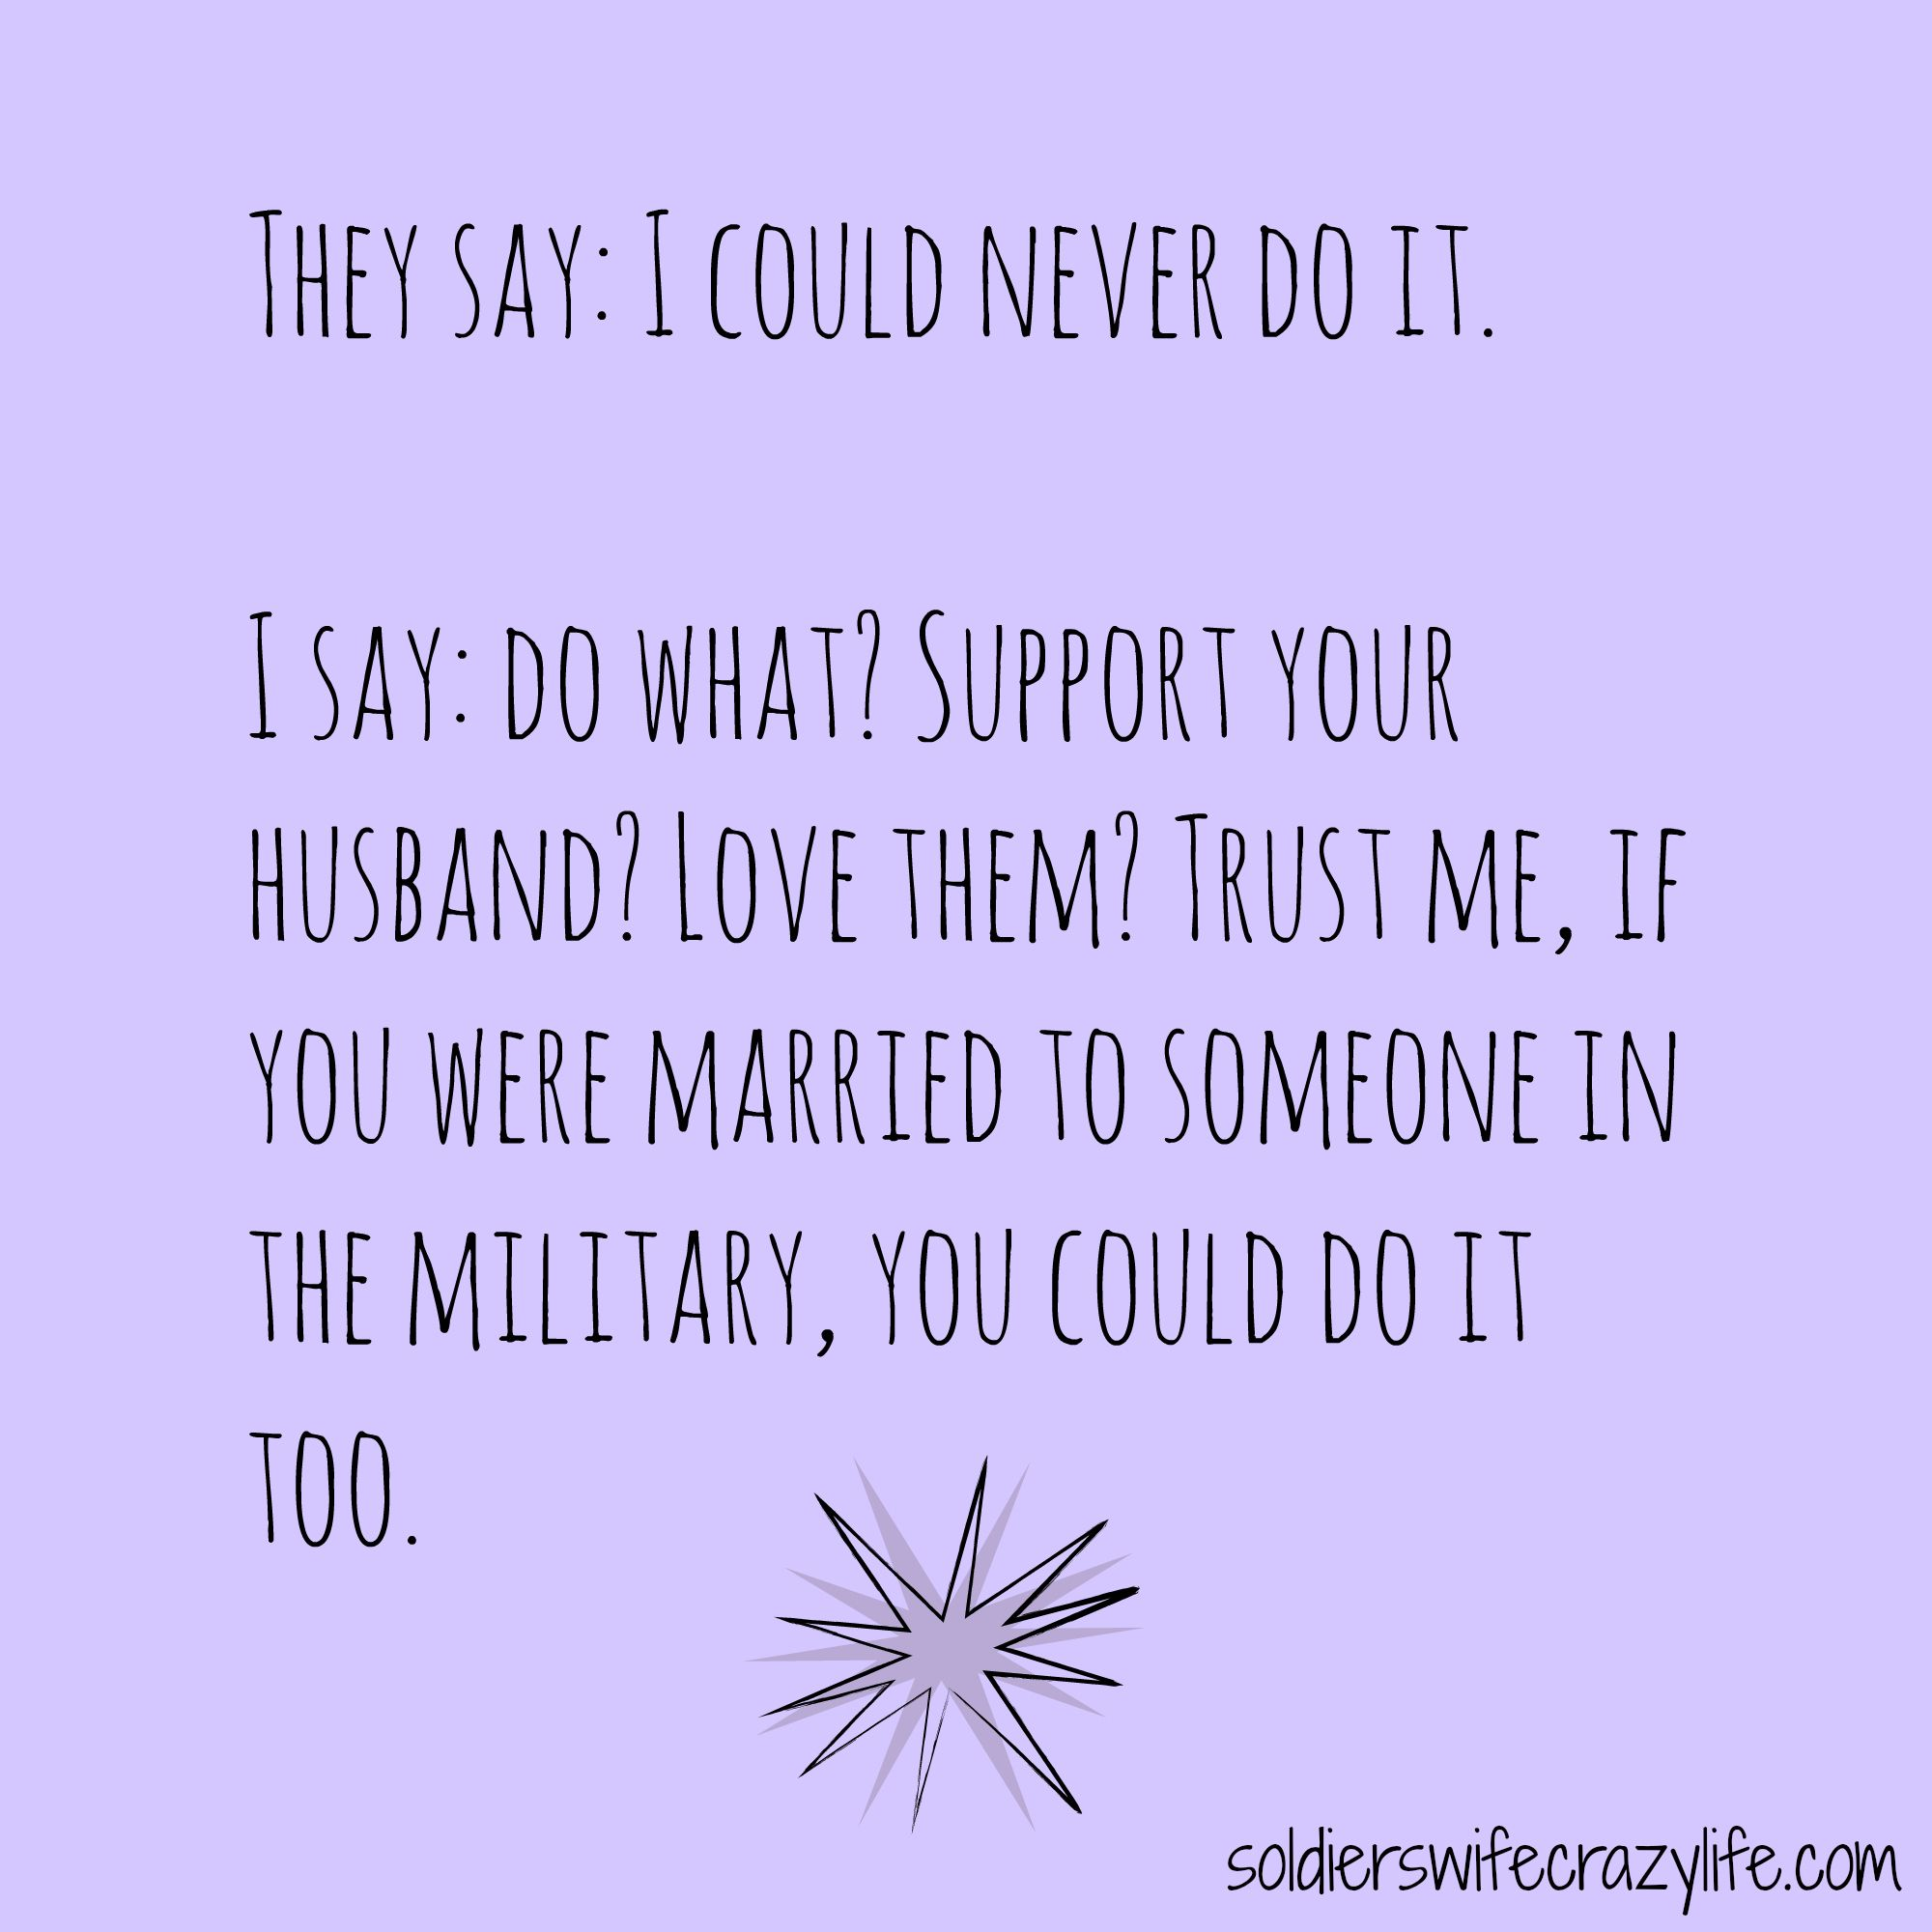 22 Memes All About Military Marriage Military Marriage Military Spouse Quotes Military Wife Life